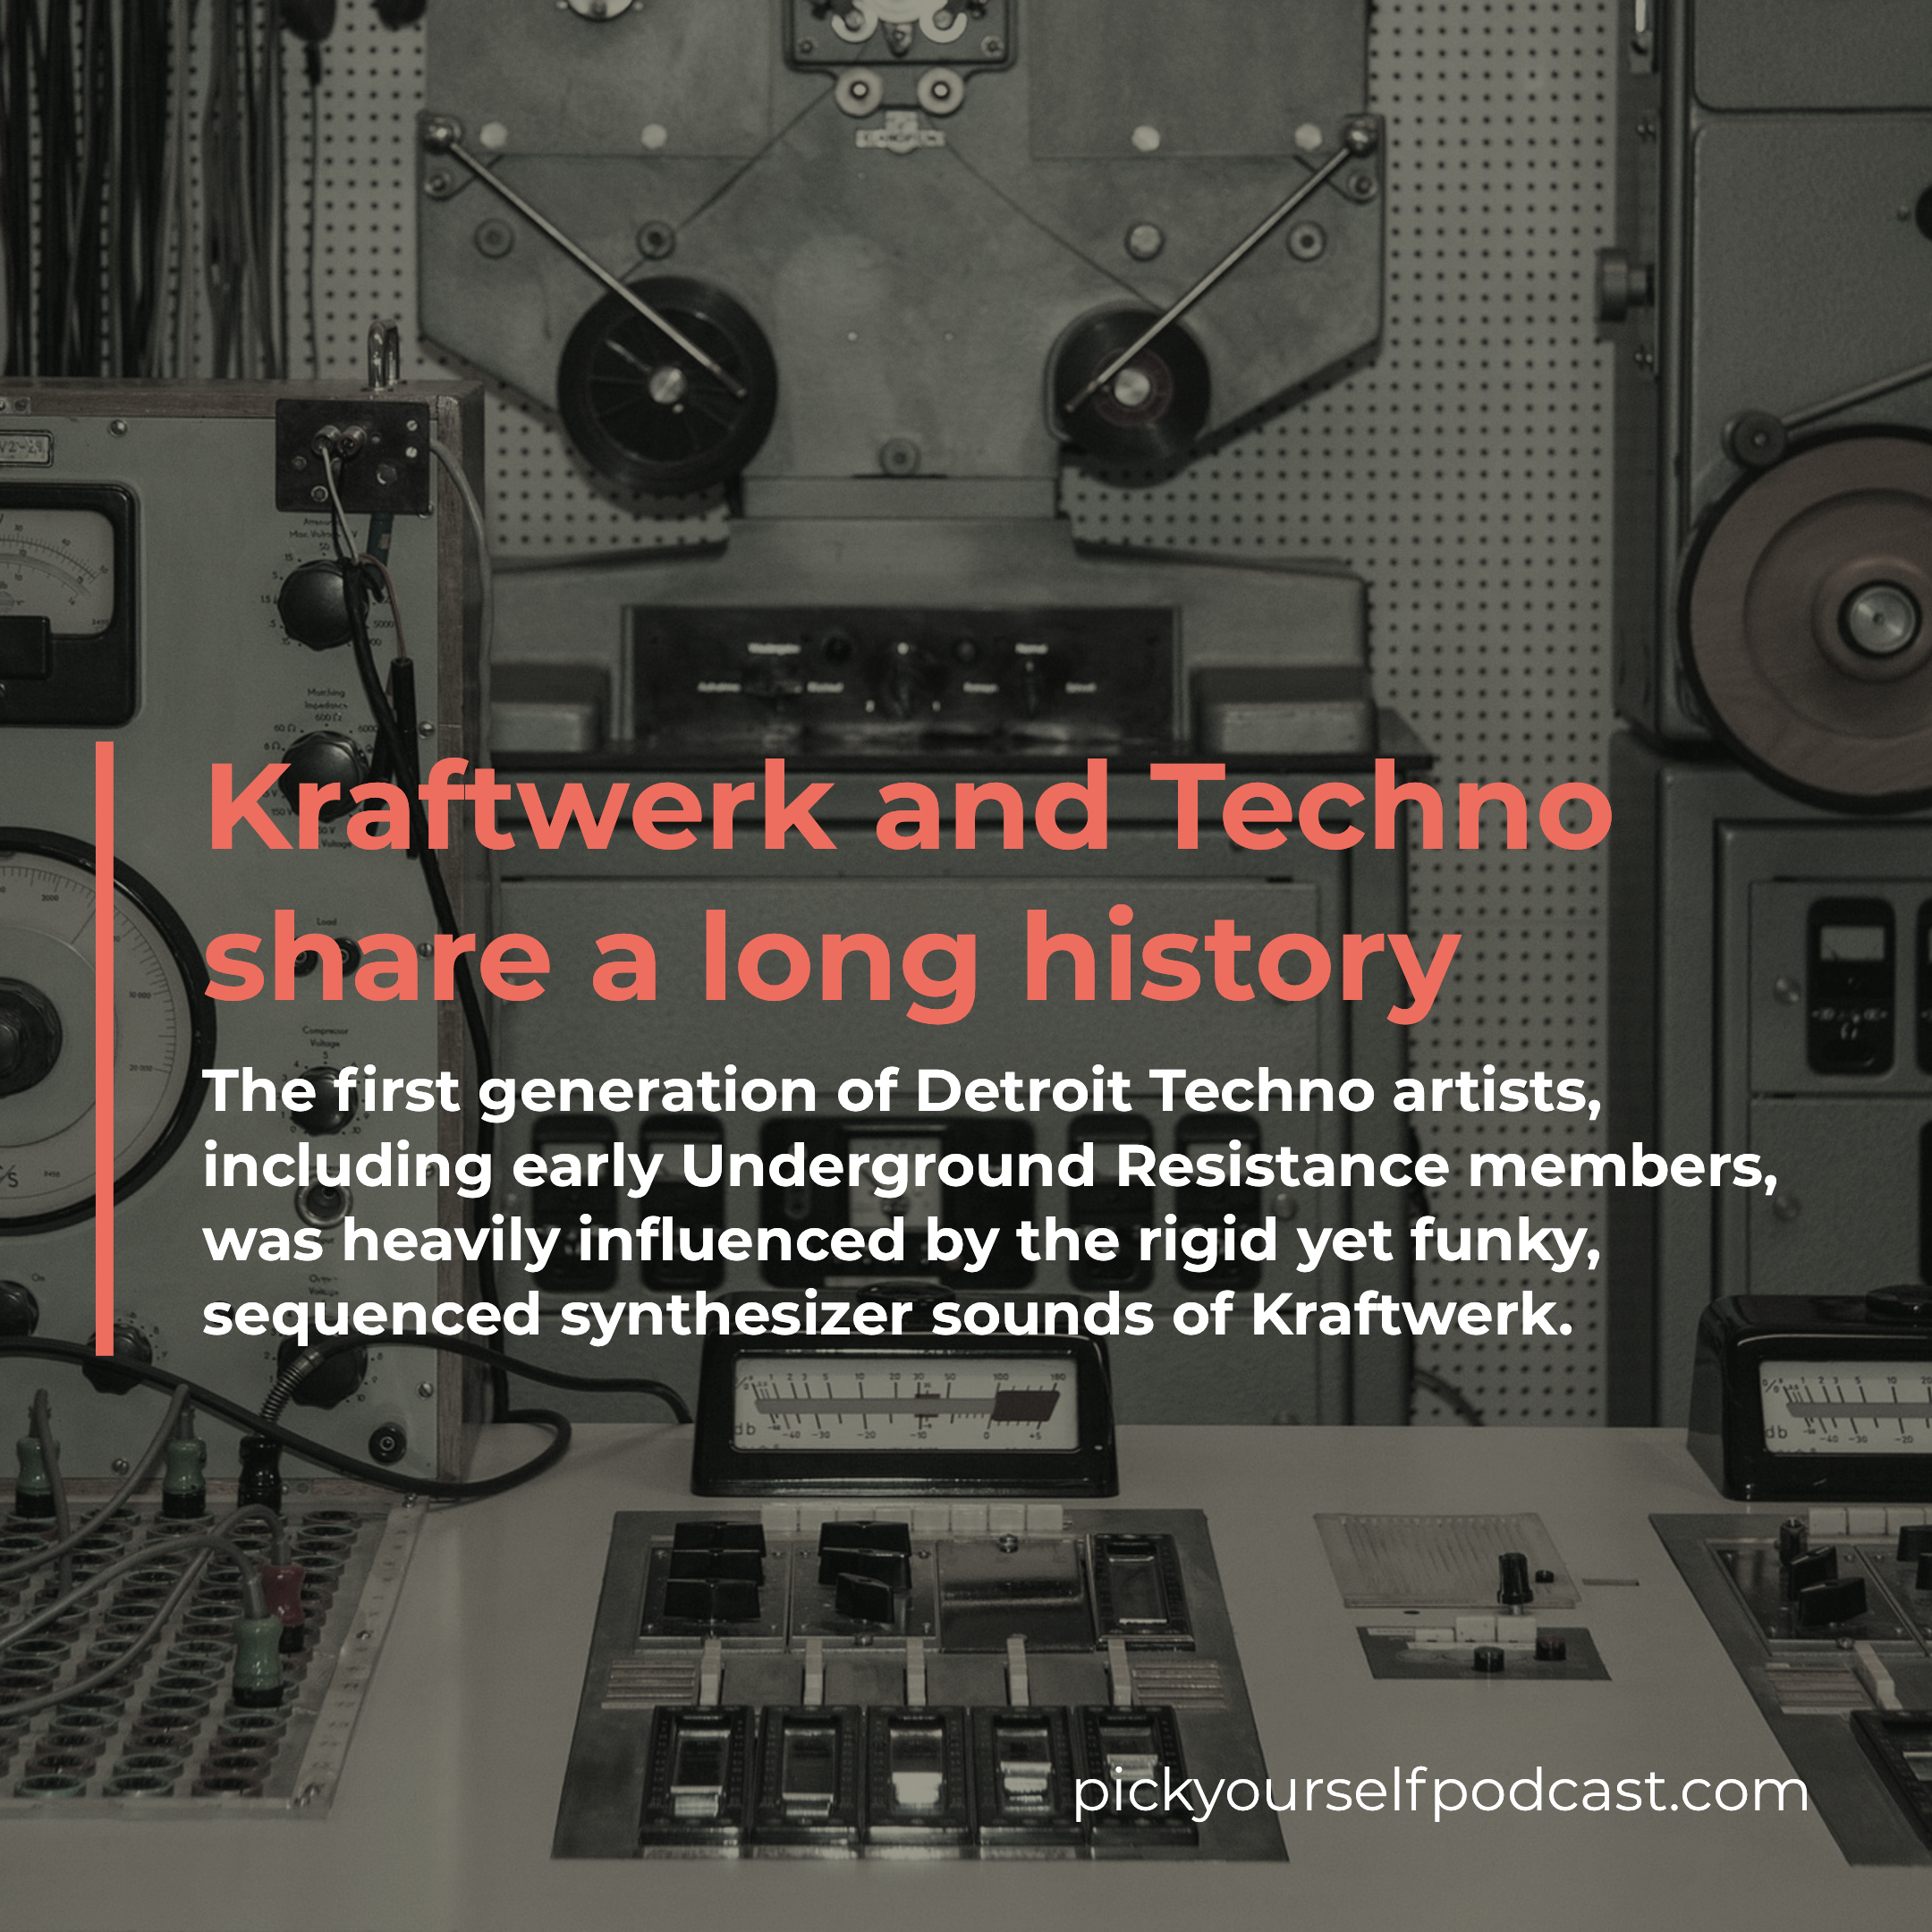 Kraftwerk and Techno share a long history. The first generation of Detroit Techno Artists was heavily influenced by the rigid yet funky sound of Kraftwerk.